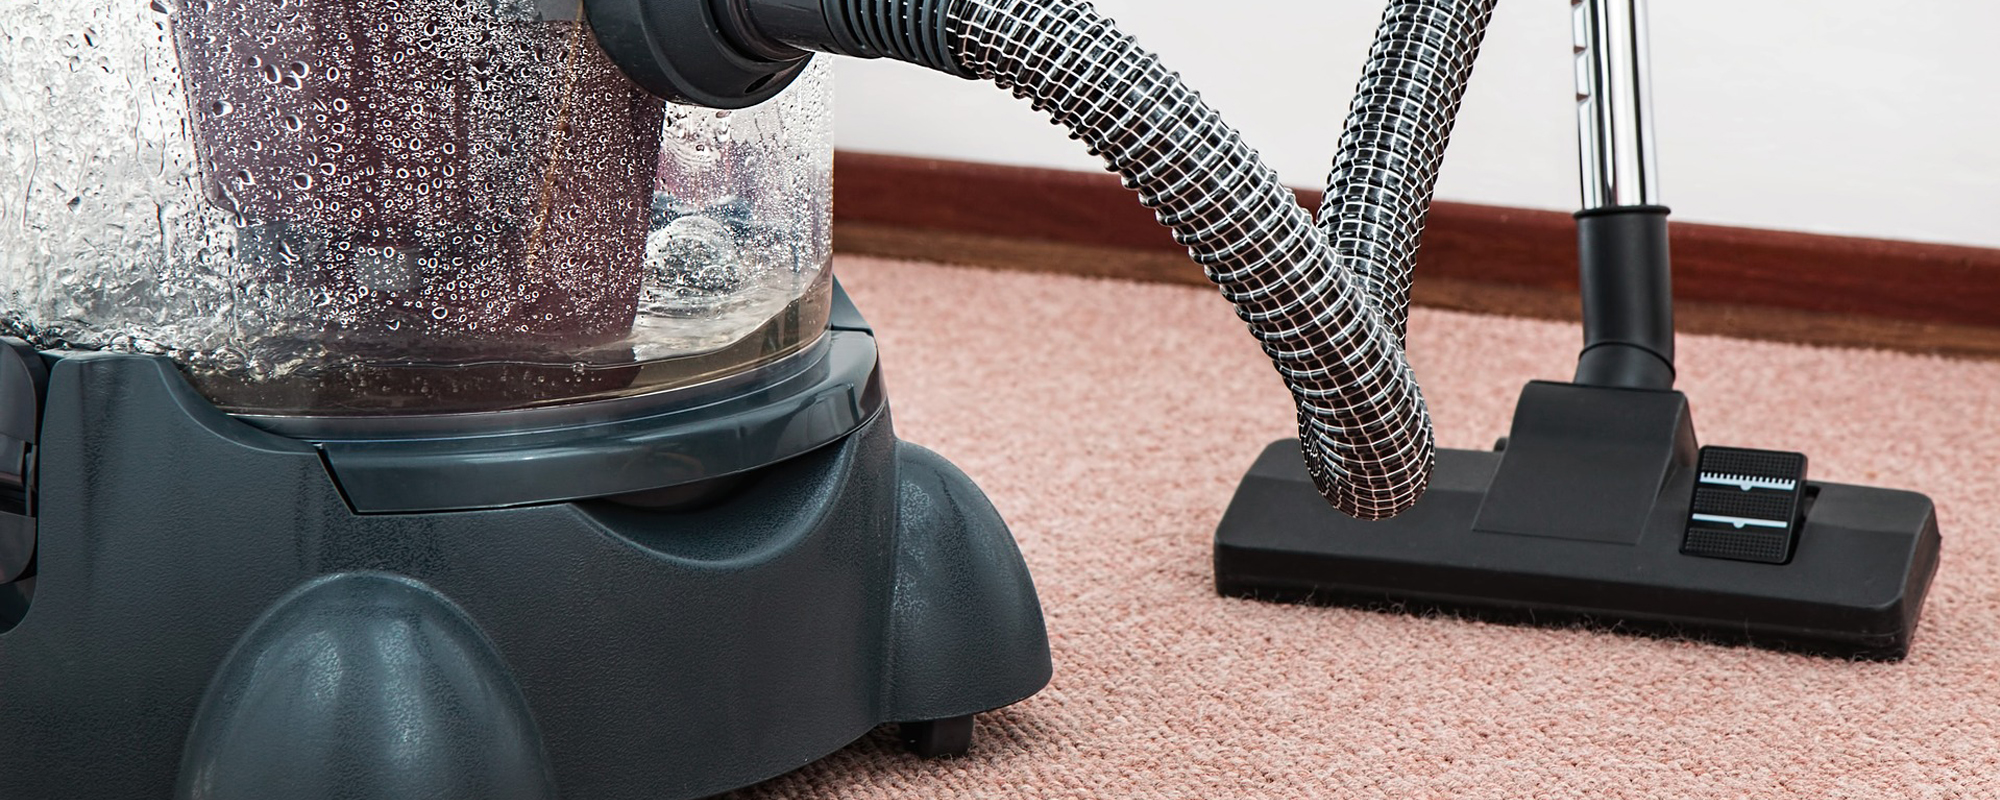 Reasons not to hire a carpet cleaning machine